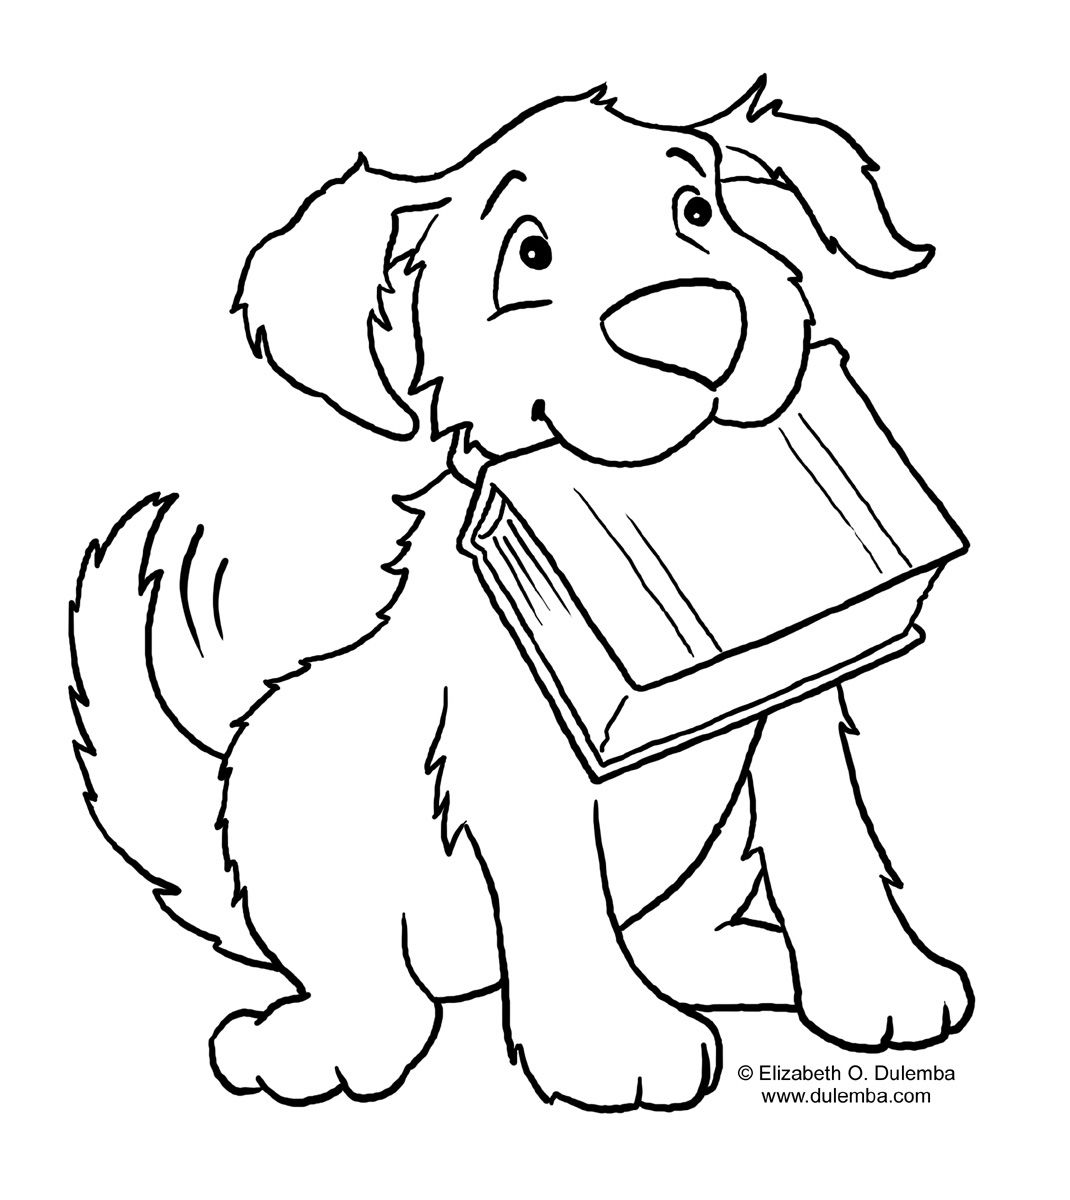 Dogs printable coloring pages for kids Find on coloring book of c